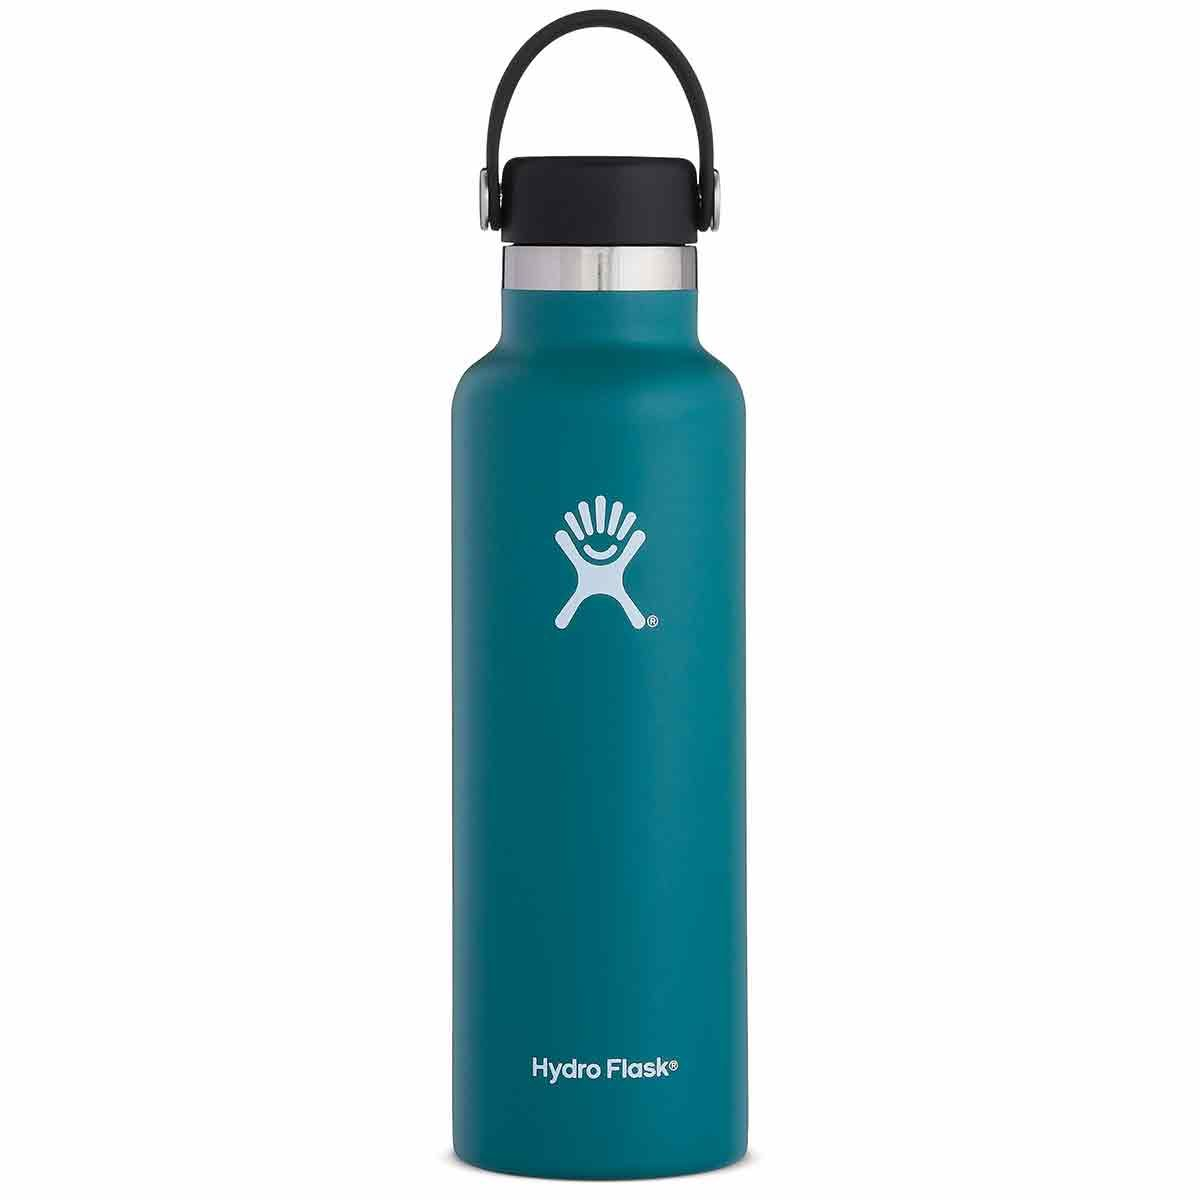 Hydro Flask 21 Oz. Standard Mouth Water Bottle With Flex Cap